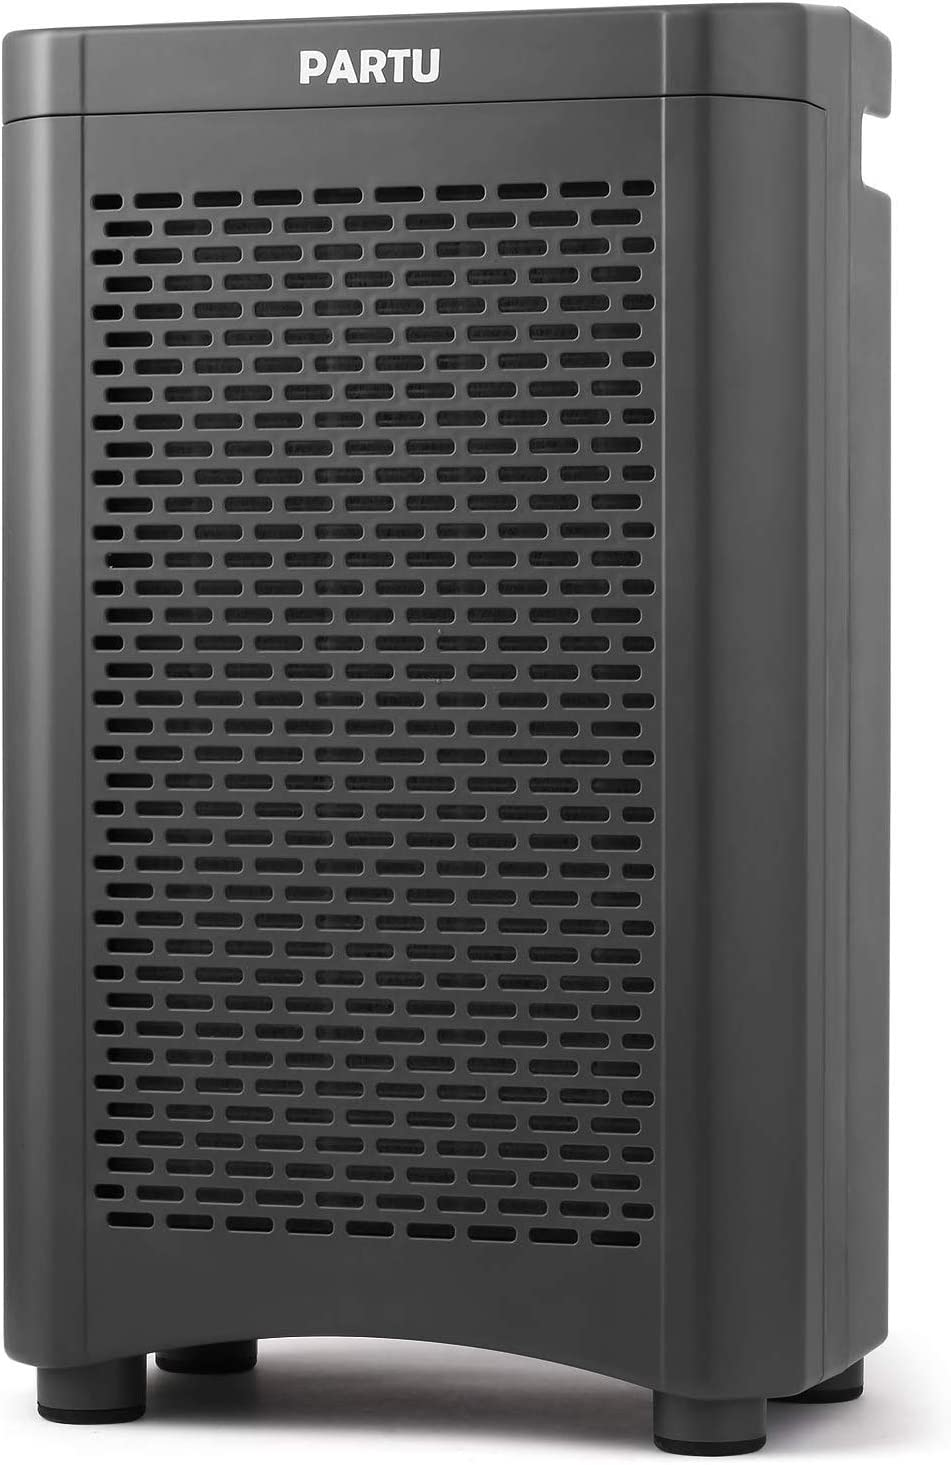 PARTU HEPA Filter Air Purifier for Home Coverage up to 300 Sq.Ft – Lock Set, Eliminates Smoke, Dust, Pollen, Pet Dander, Available for California